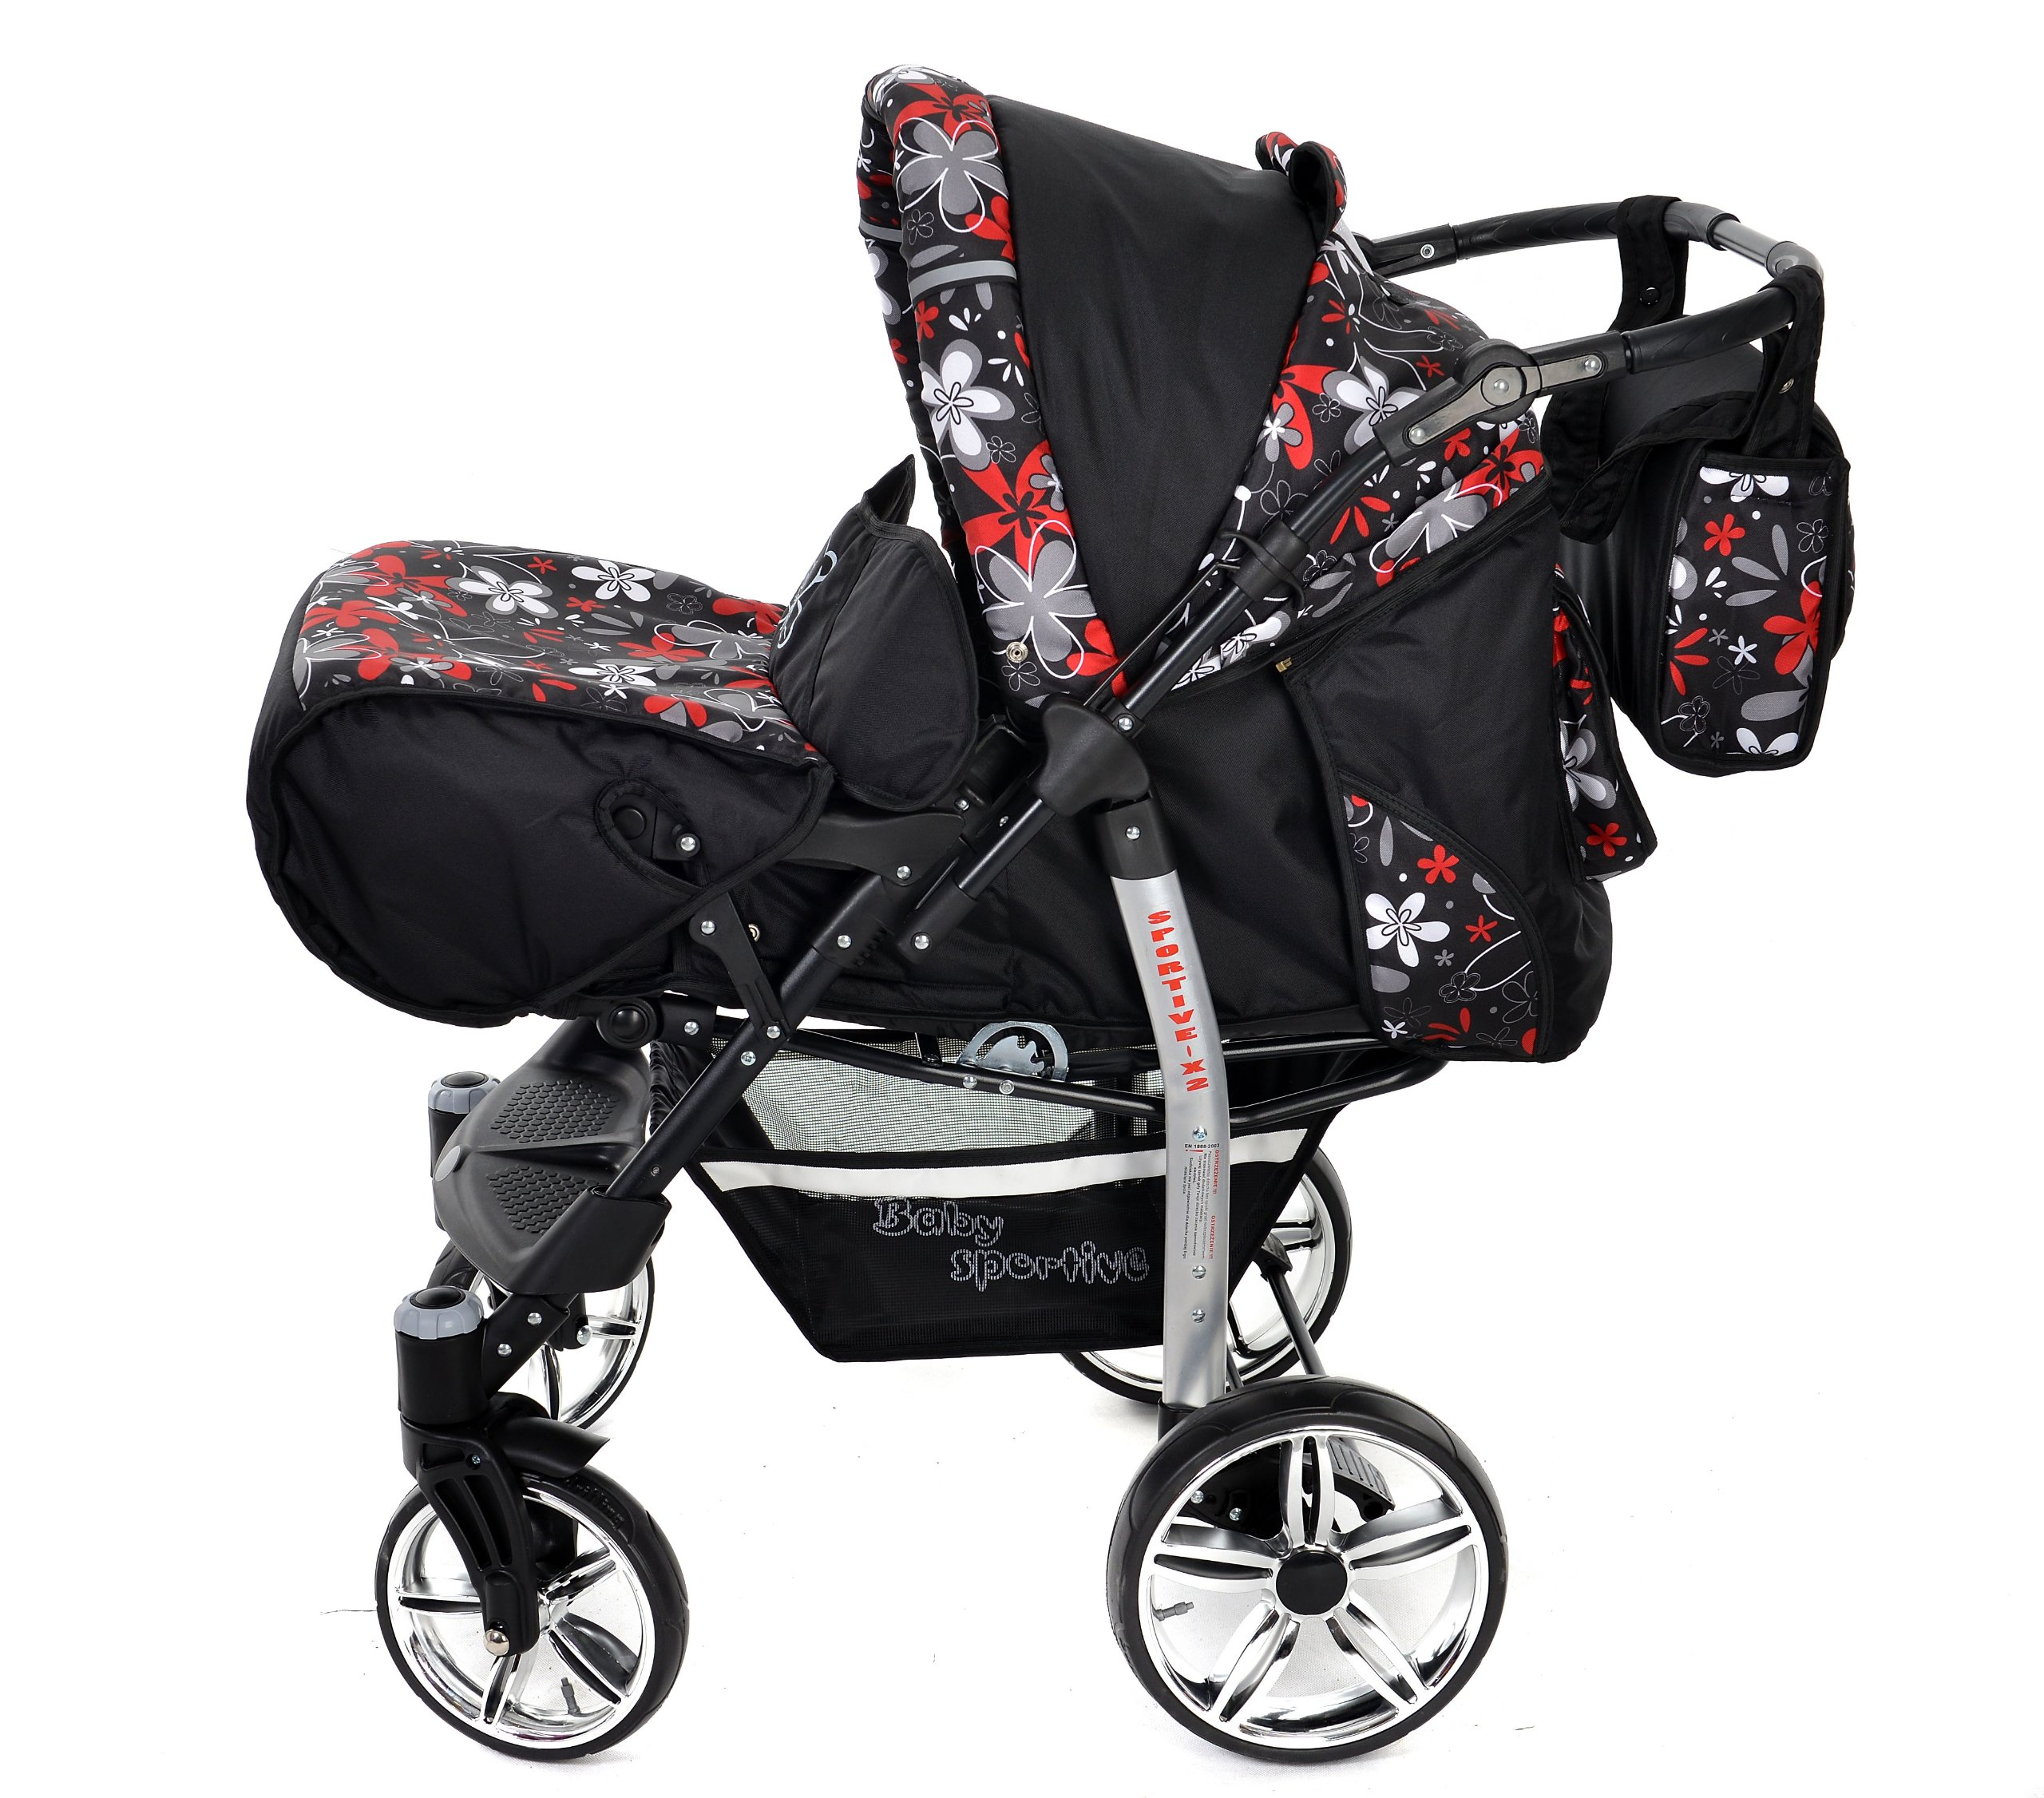 Sportive X2, 3-in-1 Travel System incl. Baby Pram with Swivel Wheels, Car Seat, Pushchair & Accessories (3-in-1 Travel System, Black & Small Flowers) Baby Sportive 3 in 1 Travel System All in One Set - Pram, Car Carrier Seat and Sport Buggy + Accessories: carrier bag, rain protection, mosquito net, changing mat, removable bottle holder and removable tray for your child's bits and pieces Suitable from birth, Easy Quick Folding System; Large storage basket; Turnable handle bar that allows to face or rear the drive direction; Quick release rear wheels for easy cleaning after muddy walks Front lockable 360o swivel wheels for manoeuvrability , Small sized when folded, fits into many small car trunks, Carry-cot with a removable hood, Reflective elements for better visibility 3